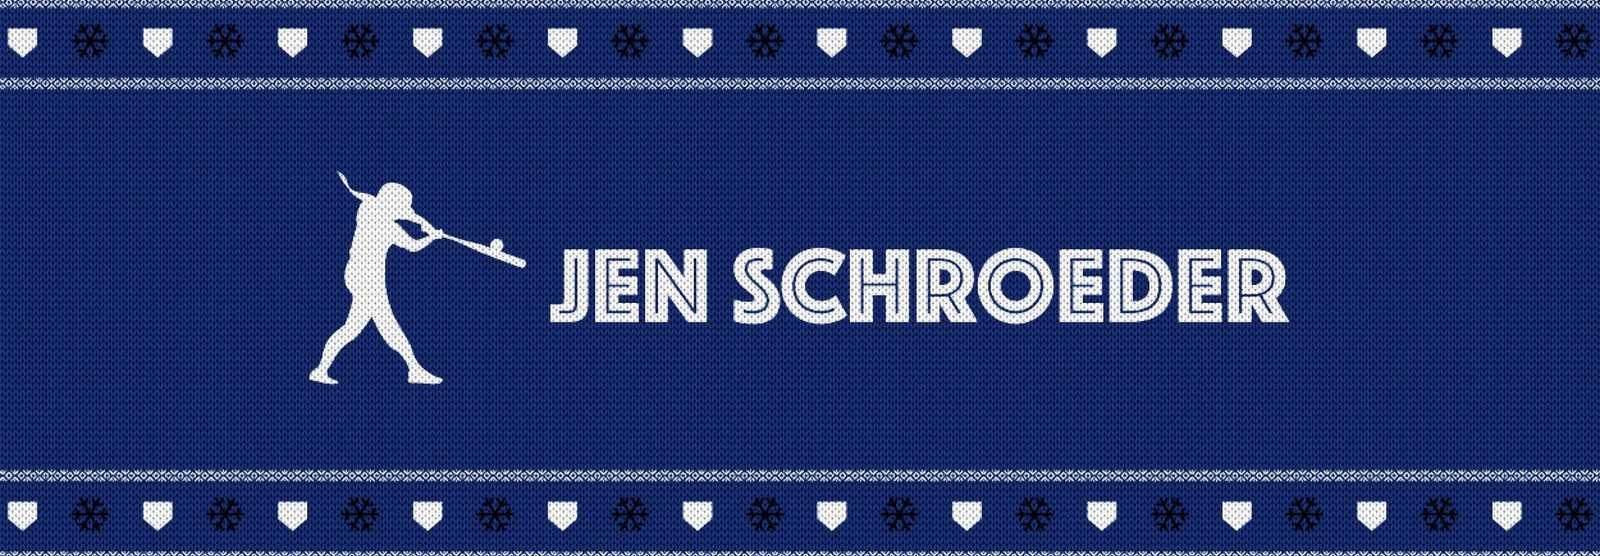 fastpitch-jen-scheoeder-collection-gift-guide